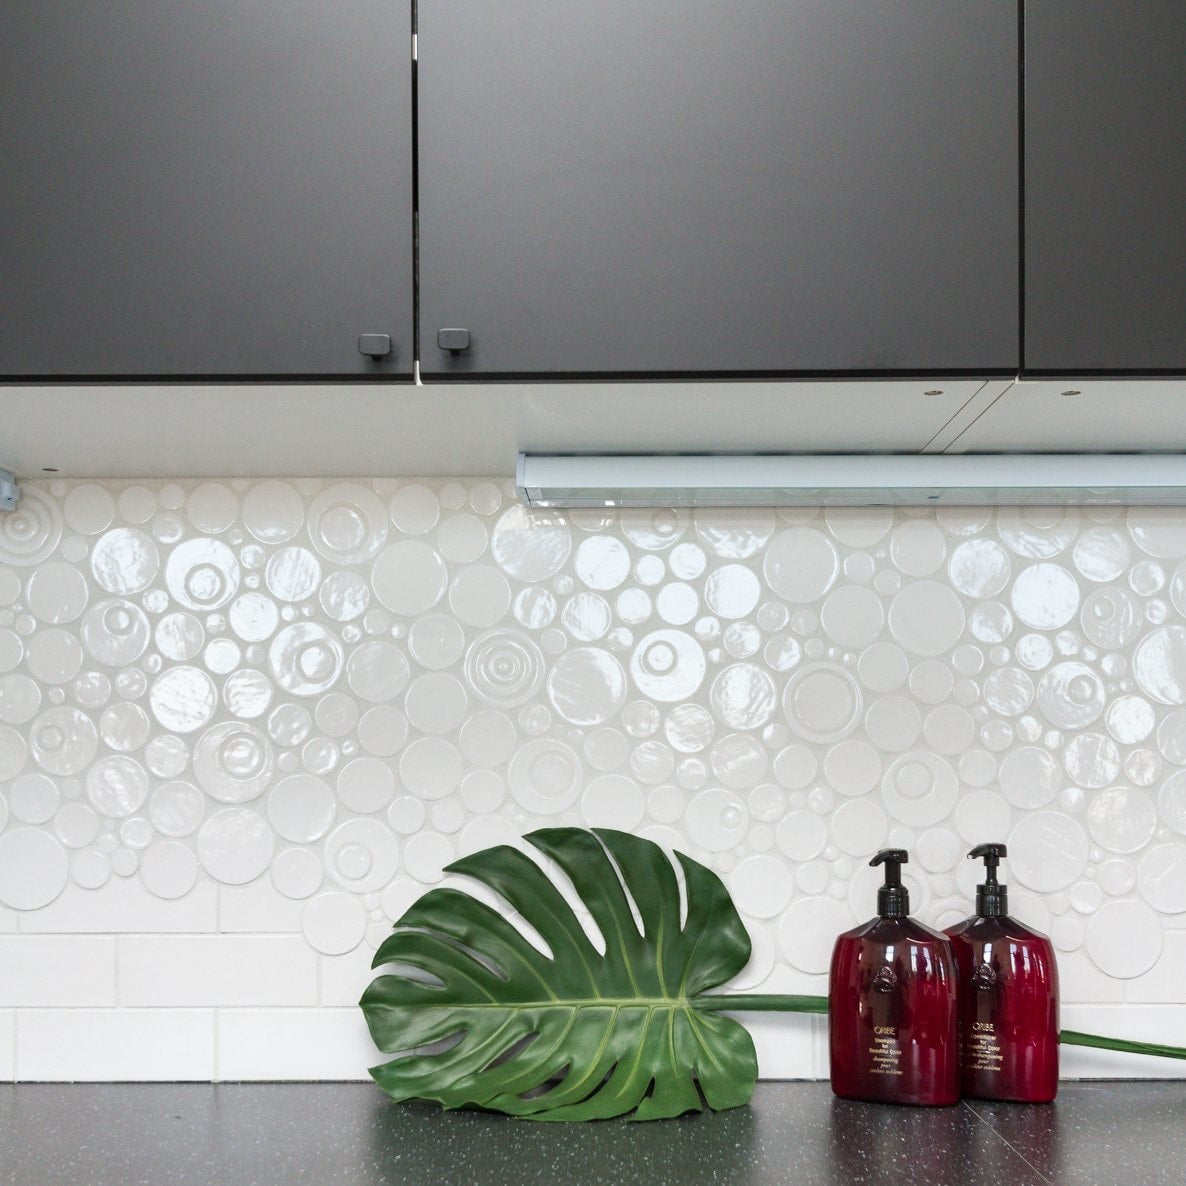 White Bubble Tile Statement Backsplash